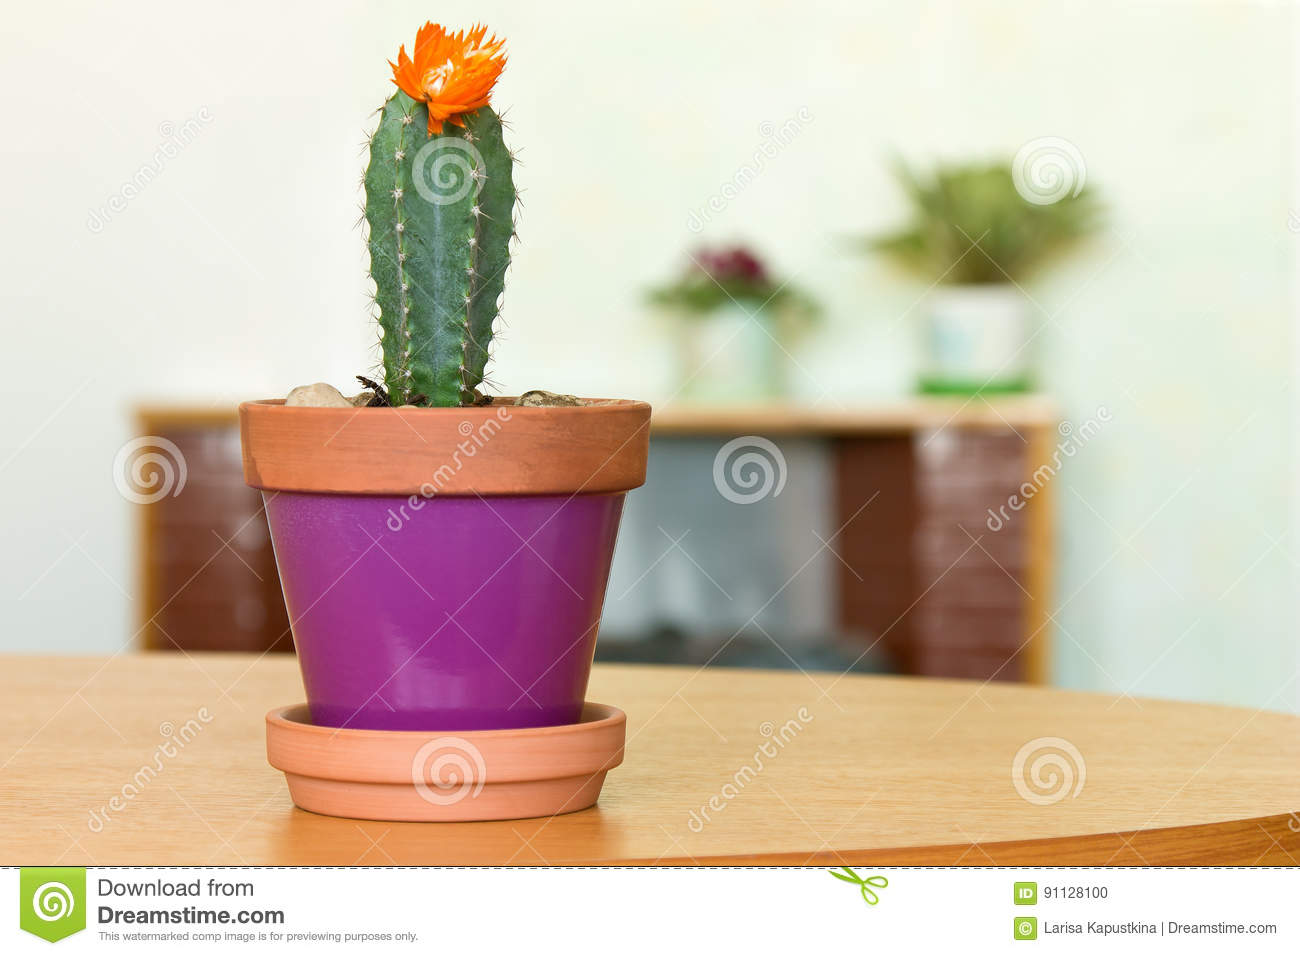 Blooming cactus plant in a flowerpot and other indoor flowers